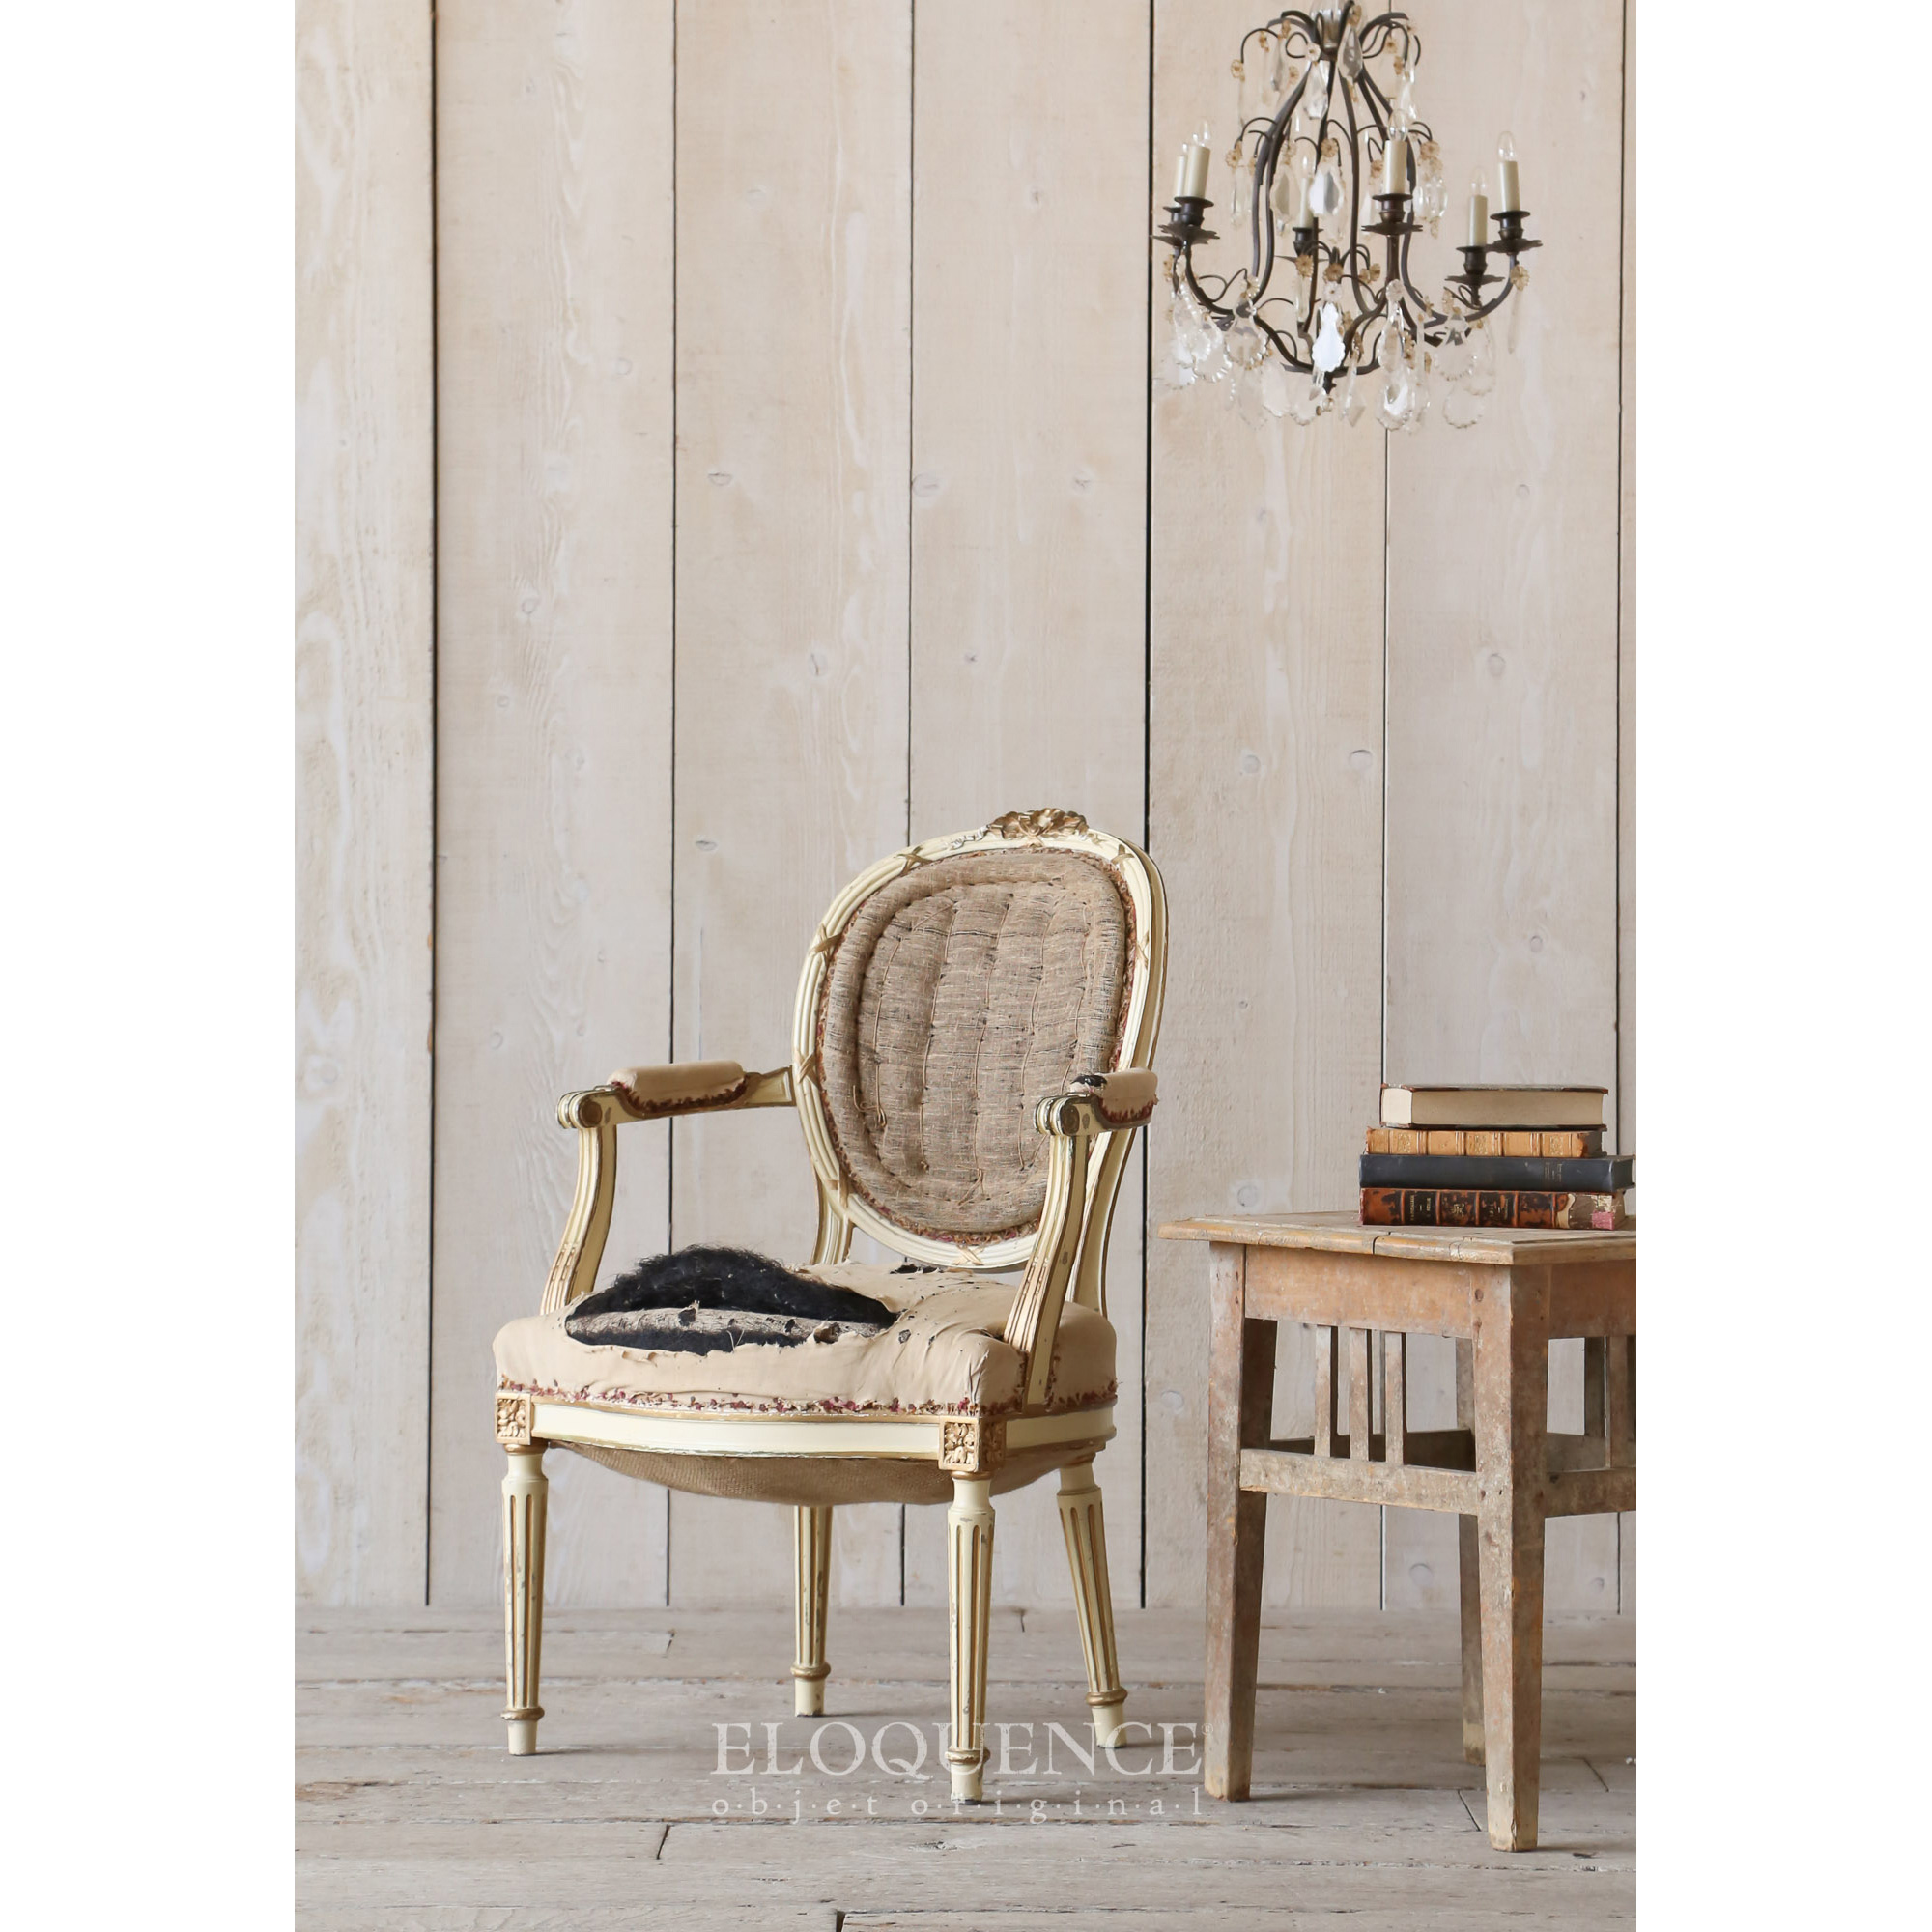 Eloquence® Vintage French Cream Gold Original Armchair